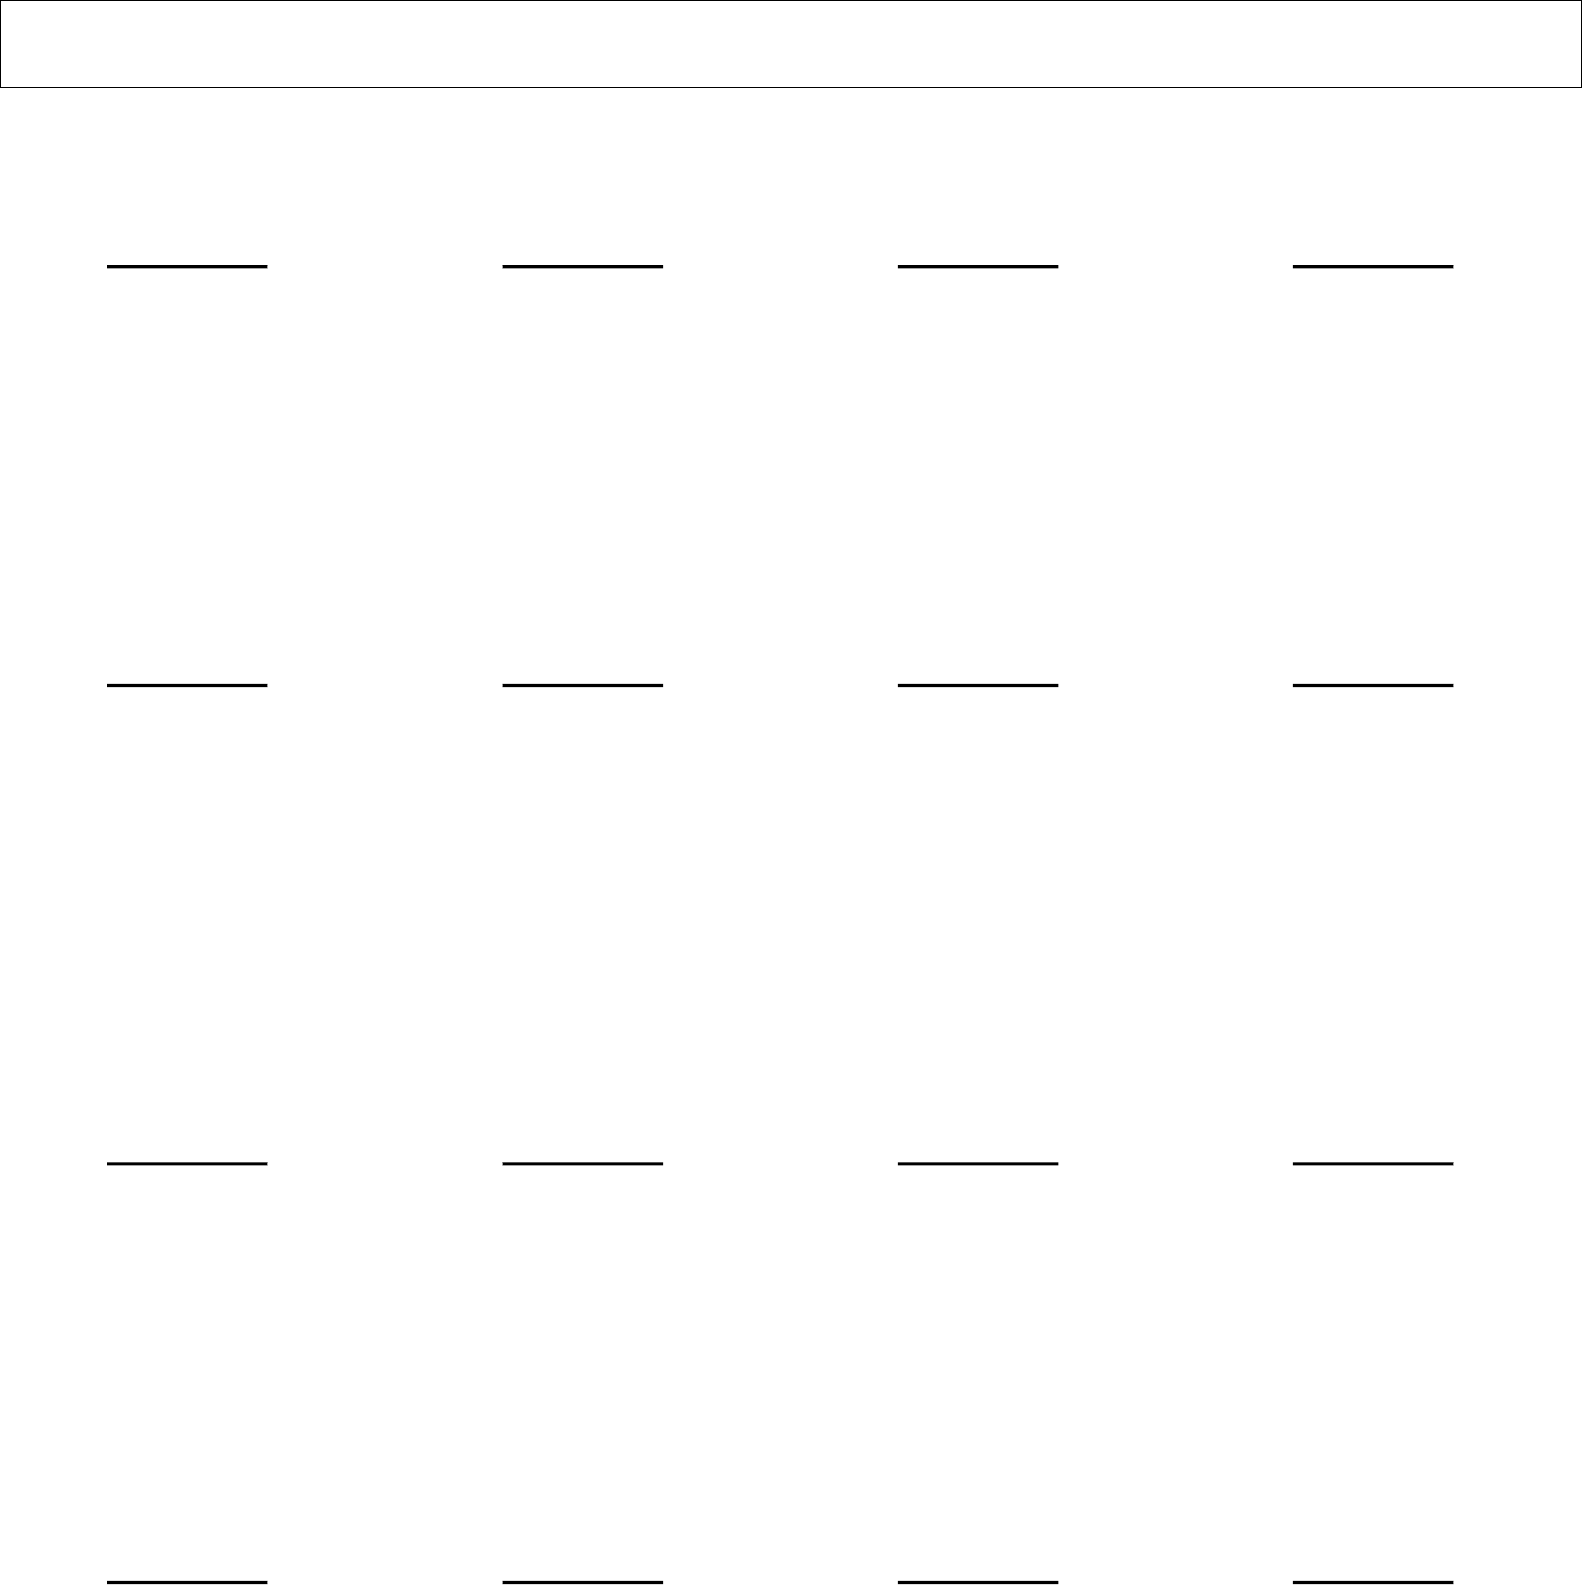 math worksheet : long division by multiples of 10 with no remainders a free download : Long Division Worksheets No Remainders